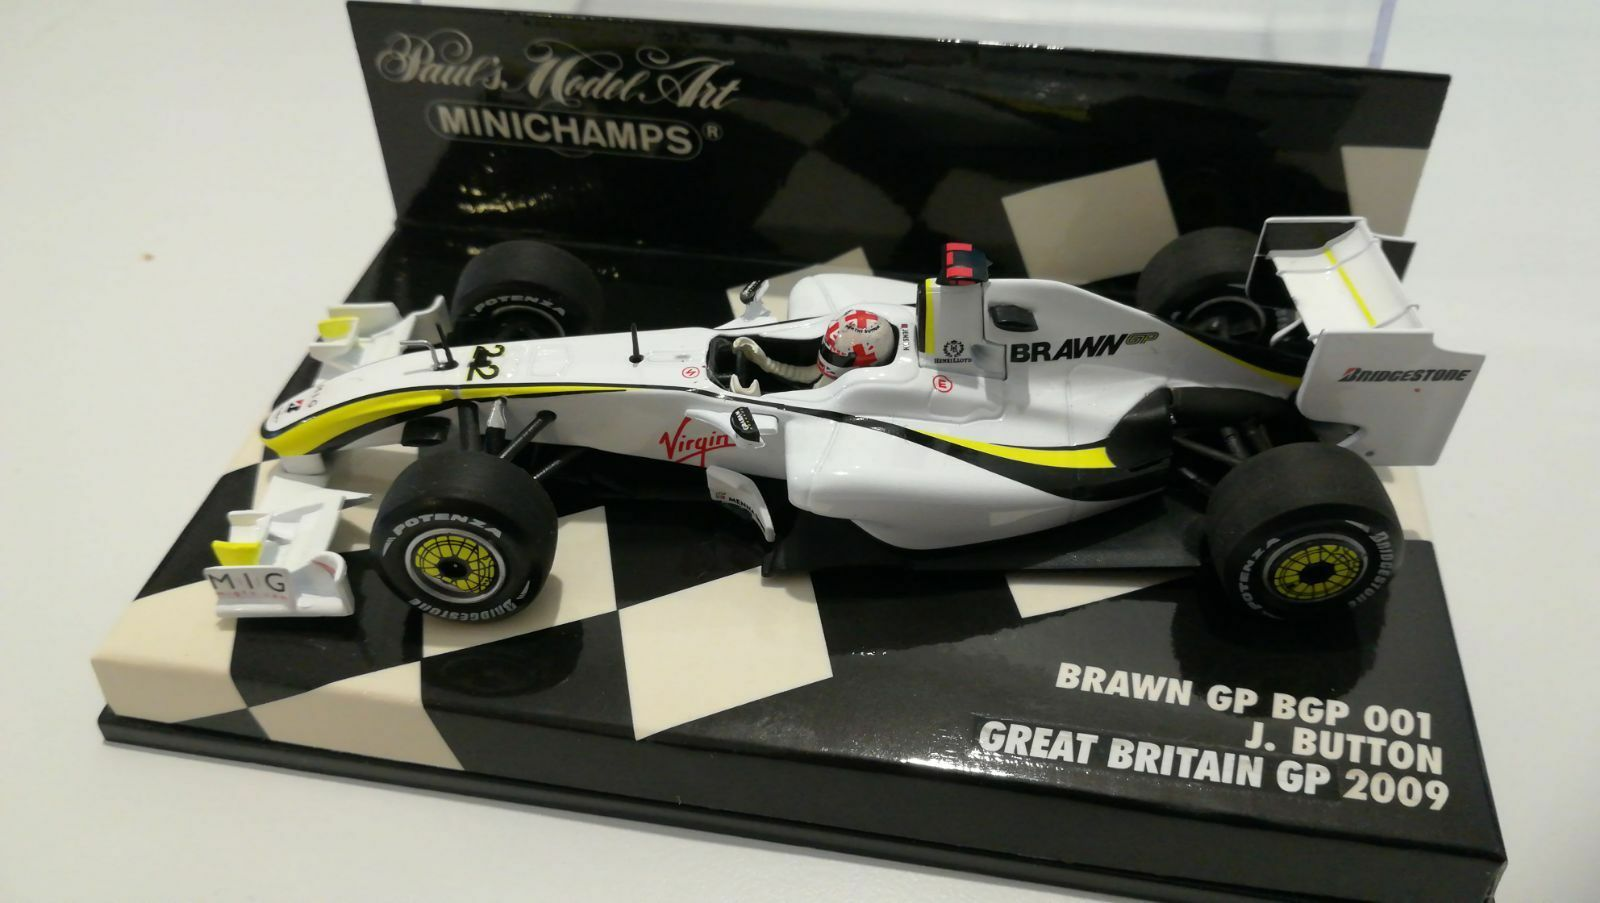 MINICHAMPS F1 1 43 BRAWN BGP001 BUTTON 2009 RARE UNION FLAG HELMET CONVERSION